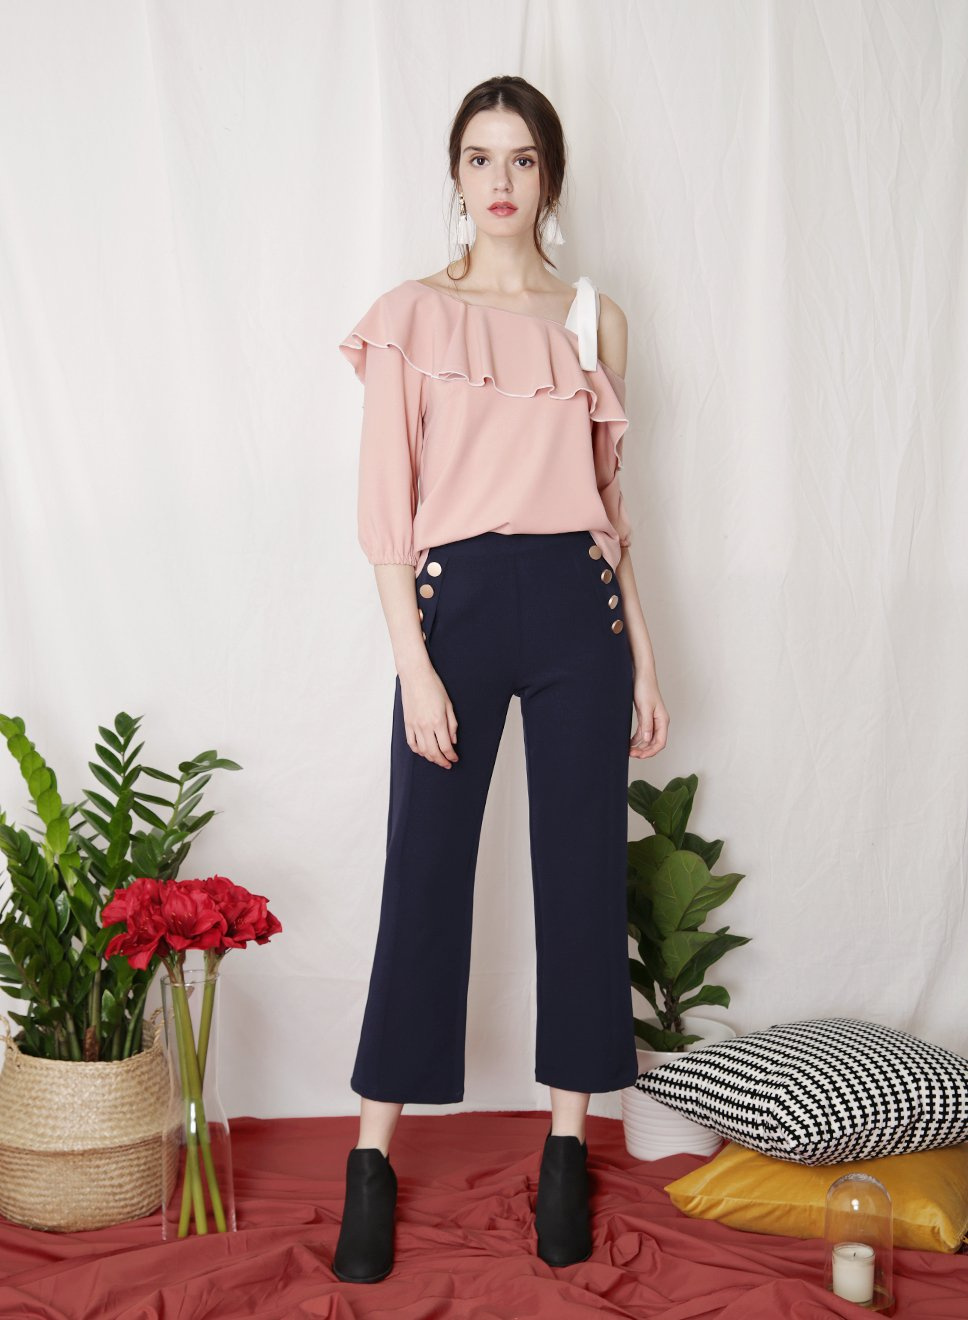 PARADE Contrast Trim Top (Blush) at $ 20.70 only sold at And Well Dressed Online Fashion Store Singapore